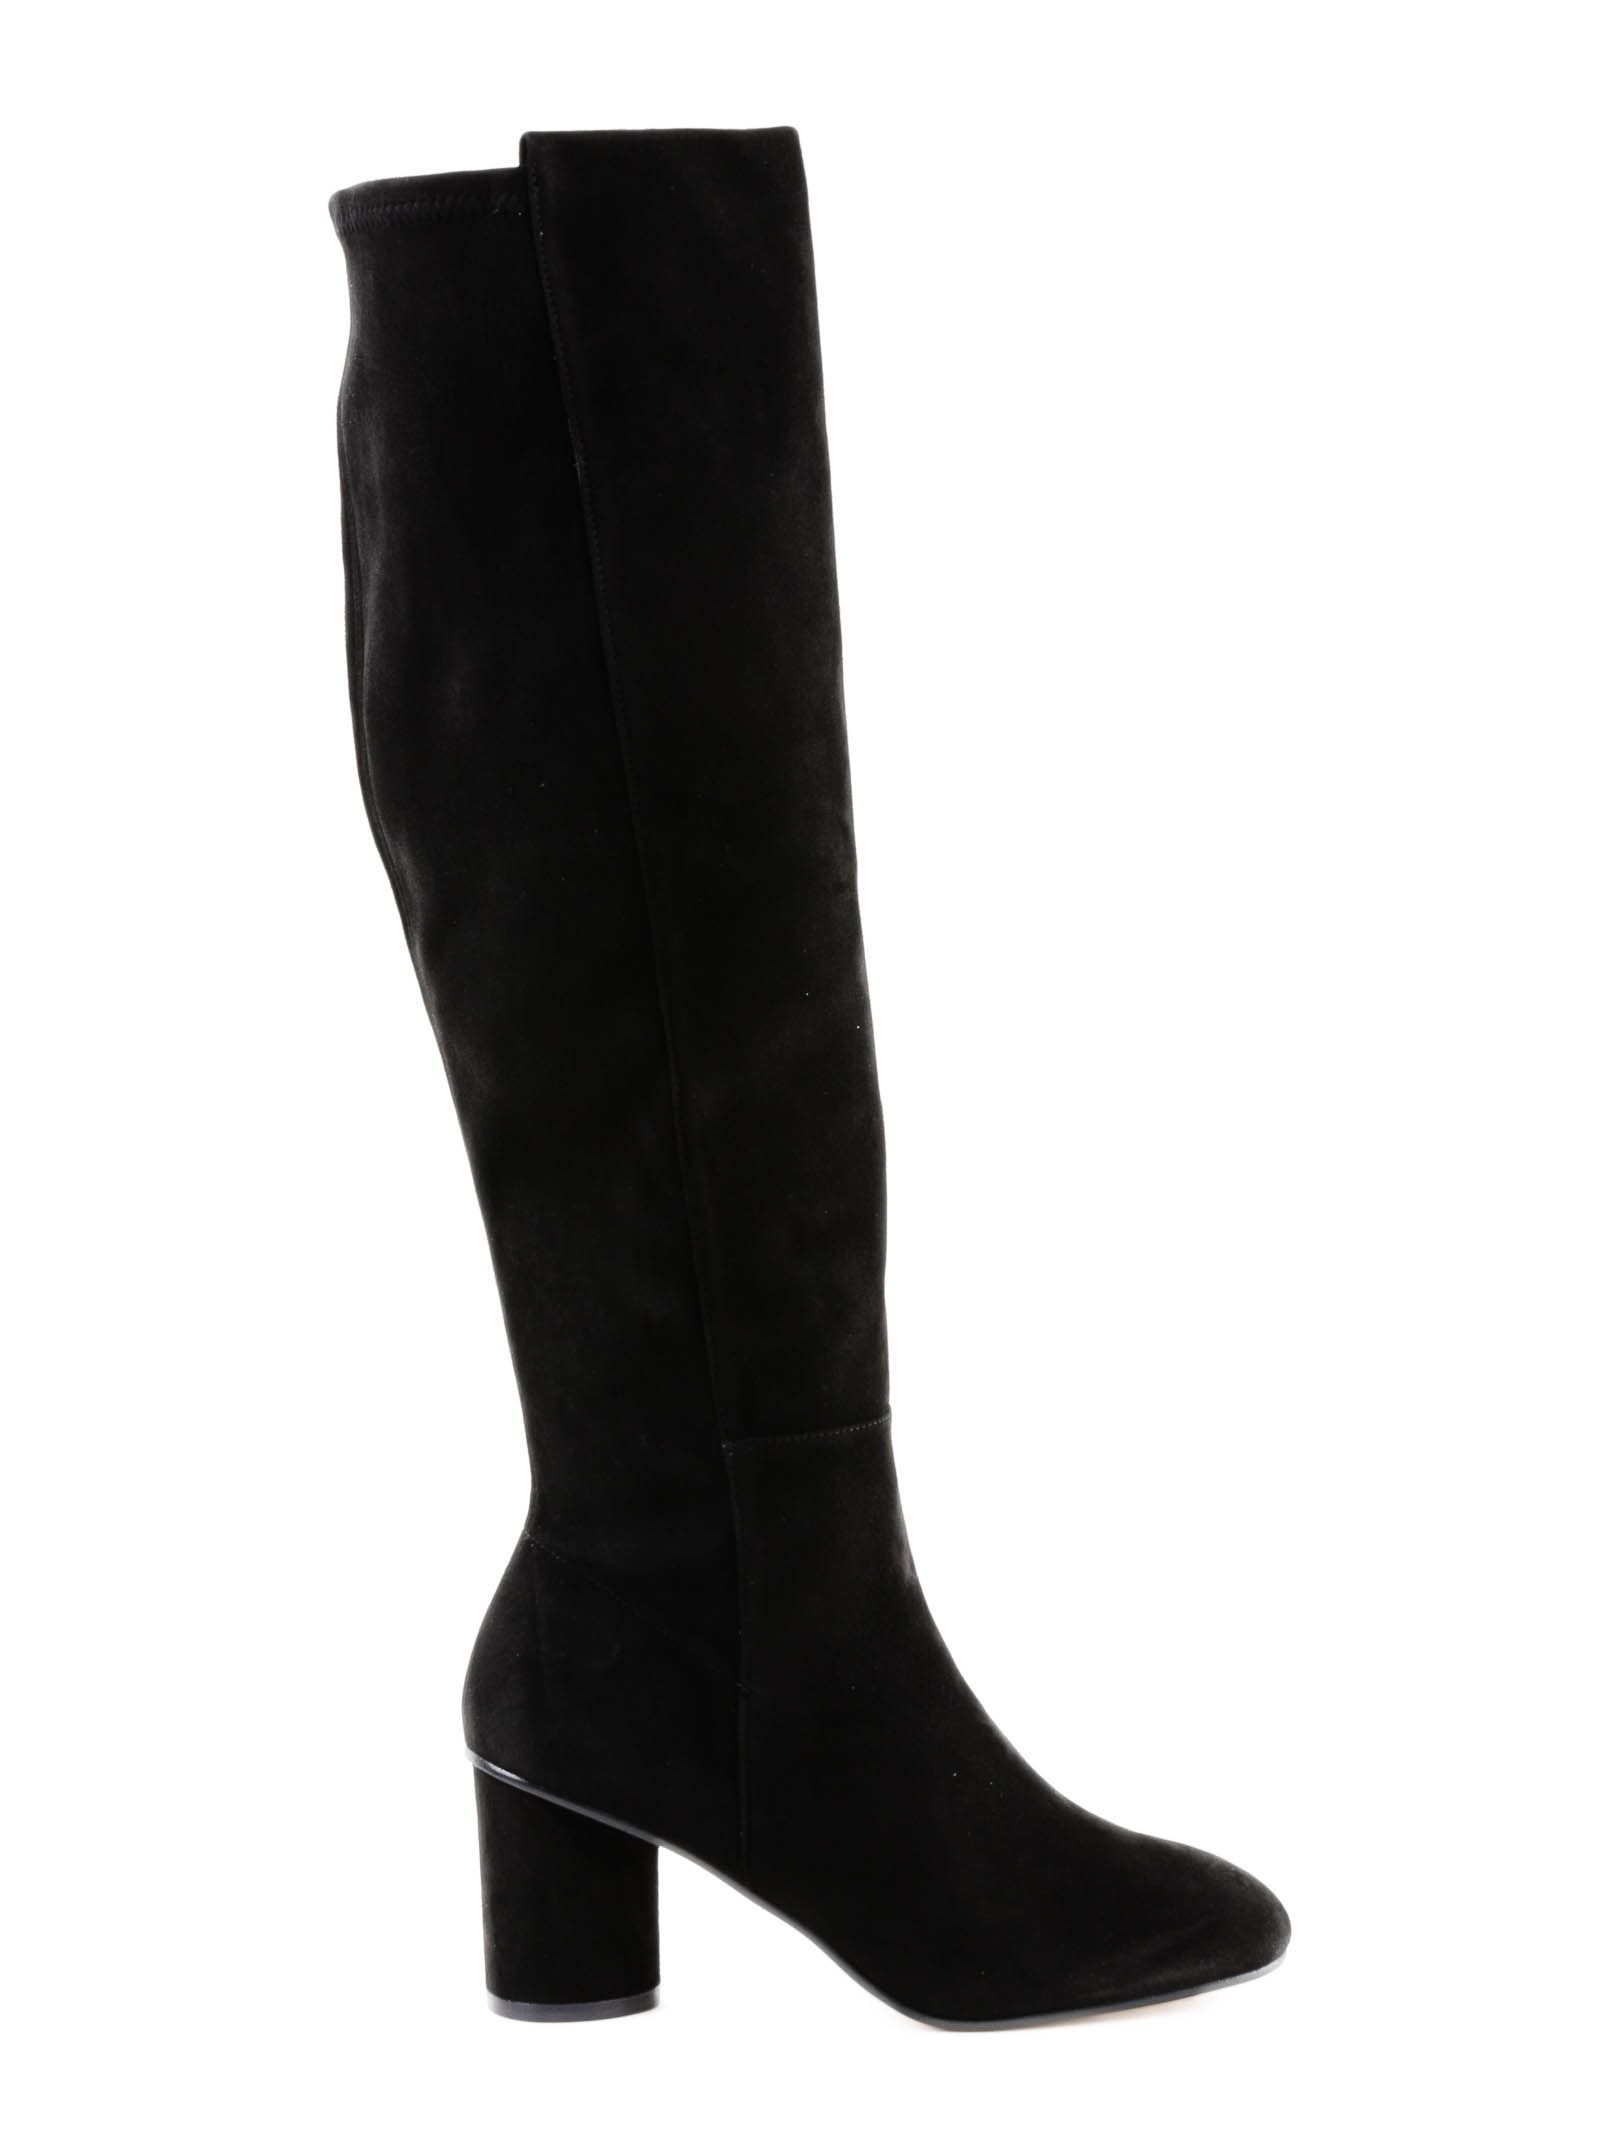 low shipping sale online Stuart Weitzman Eloise boots clearance best seller sale prices UY4LYXnAh